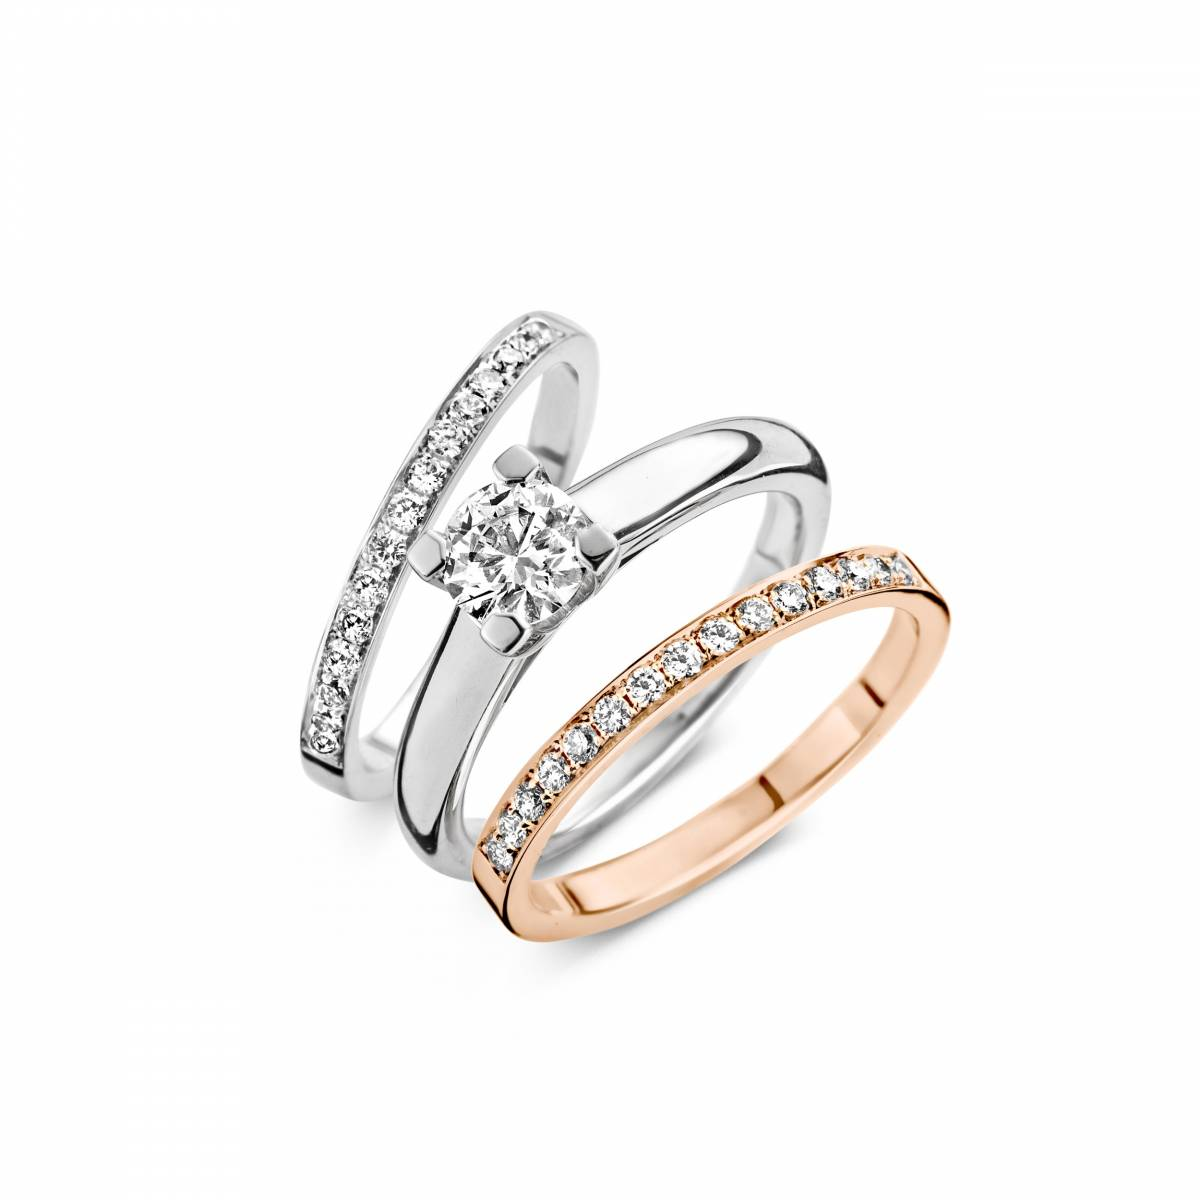 Juwelier Martens - House of Weddings 12